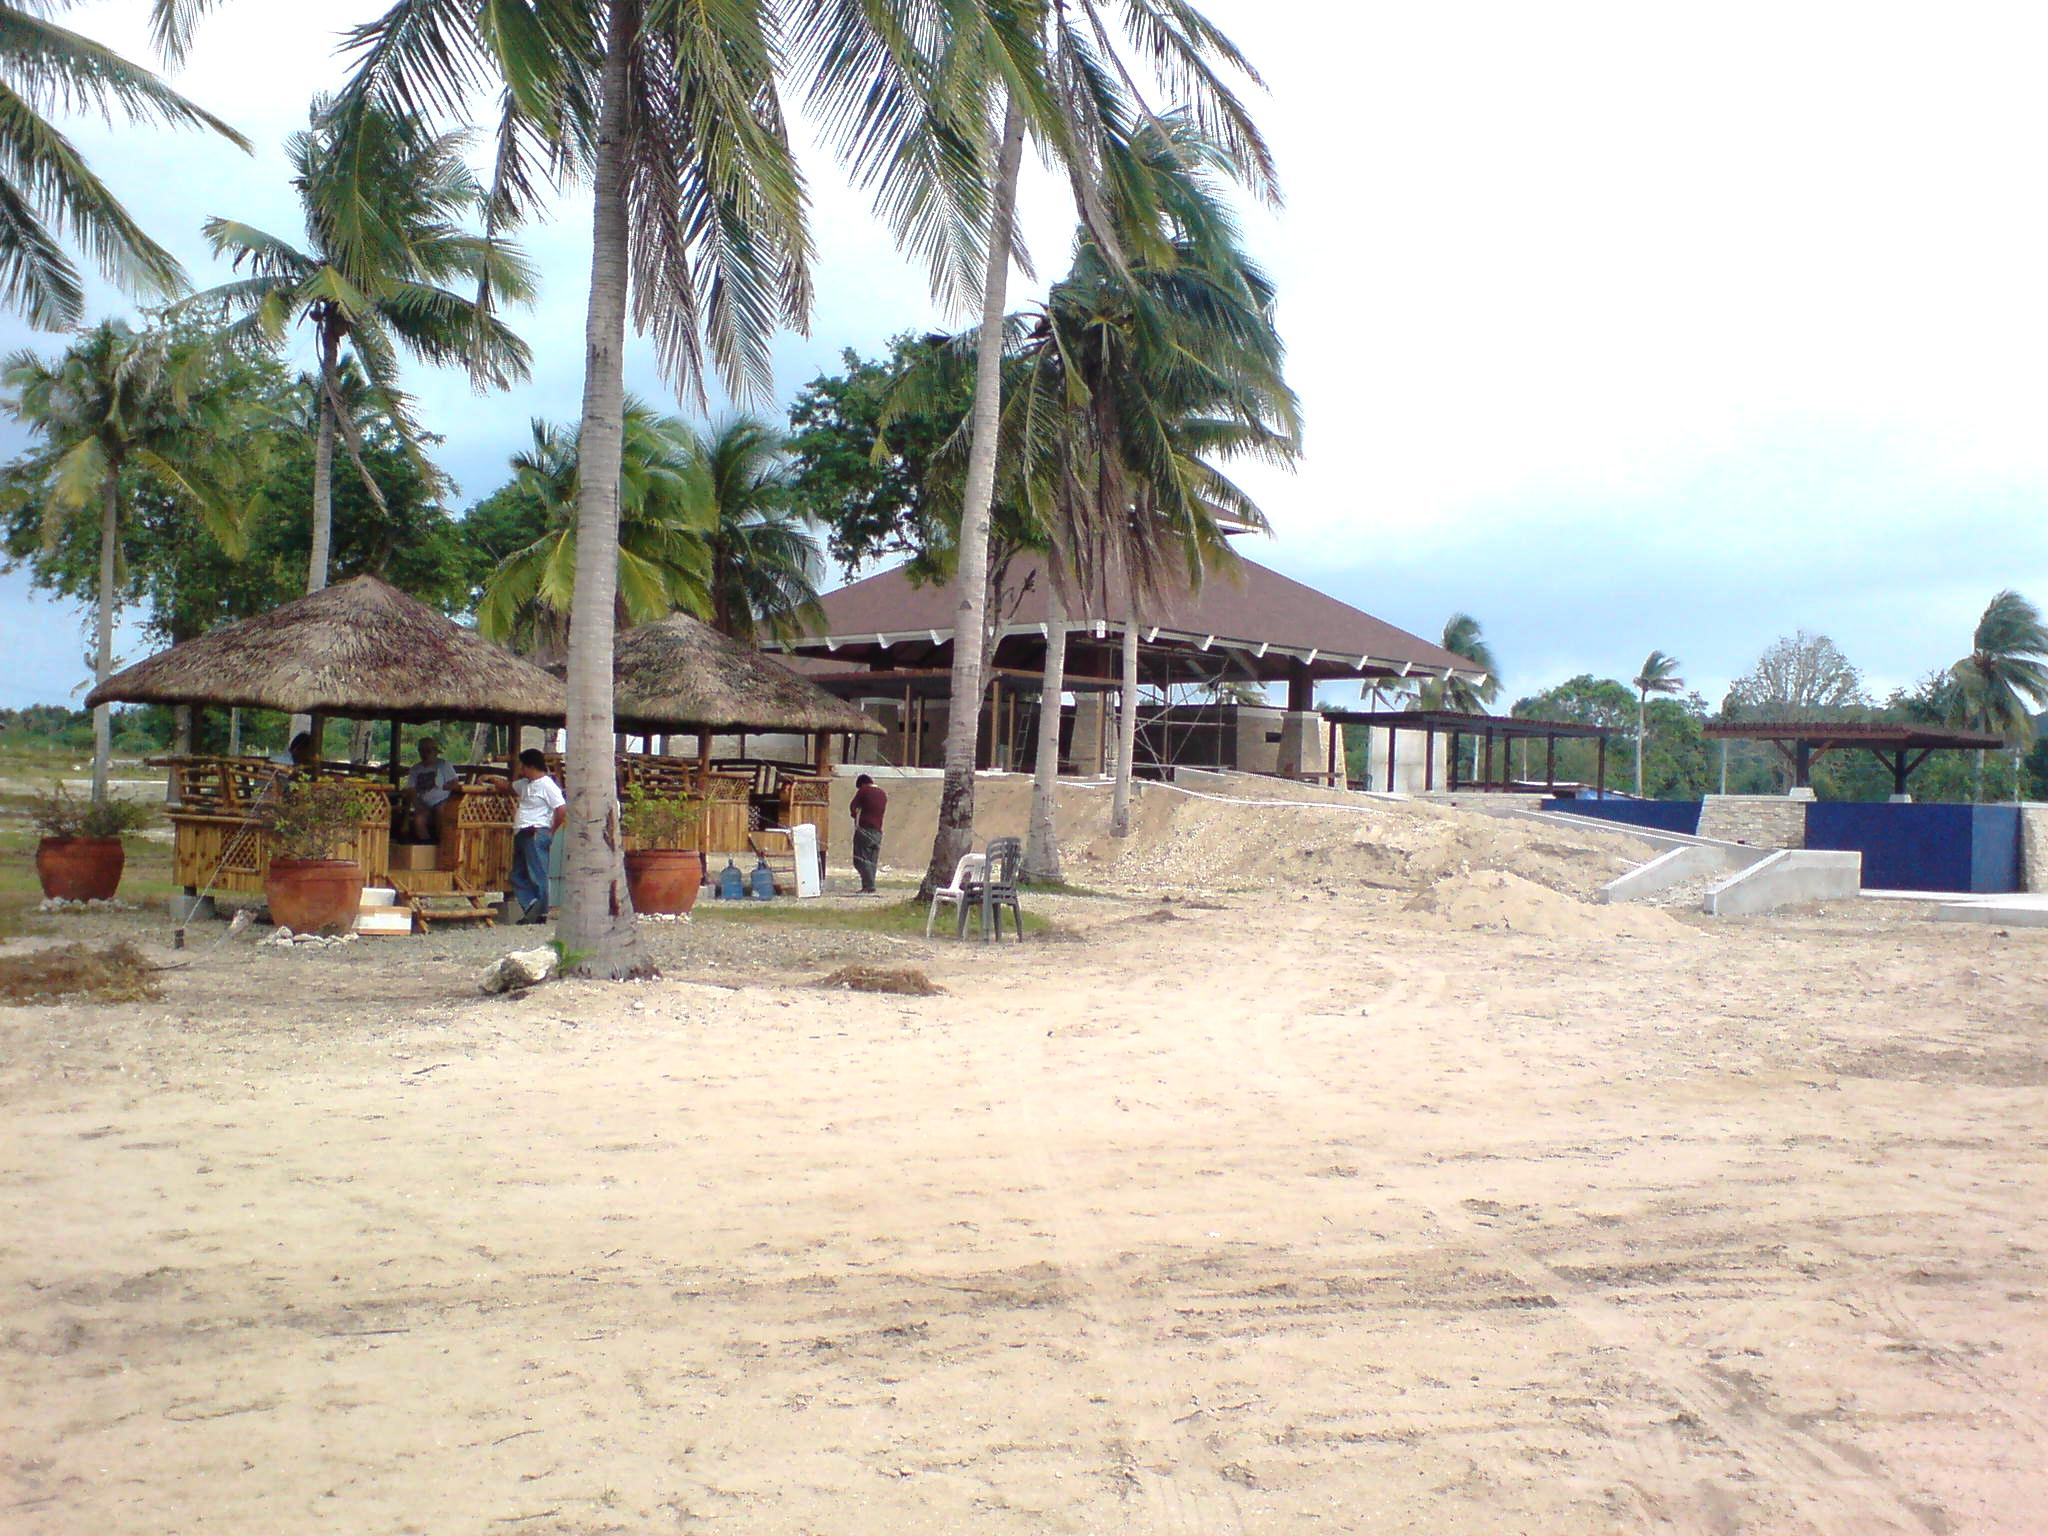 The Beach Club with nipa huts